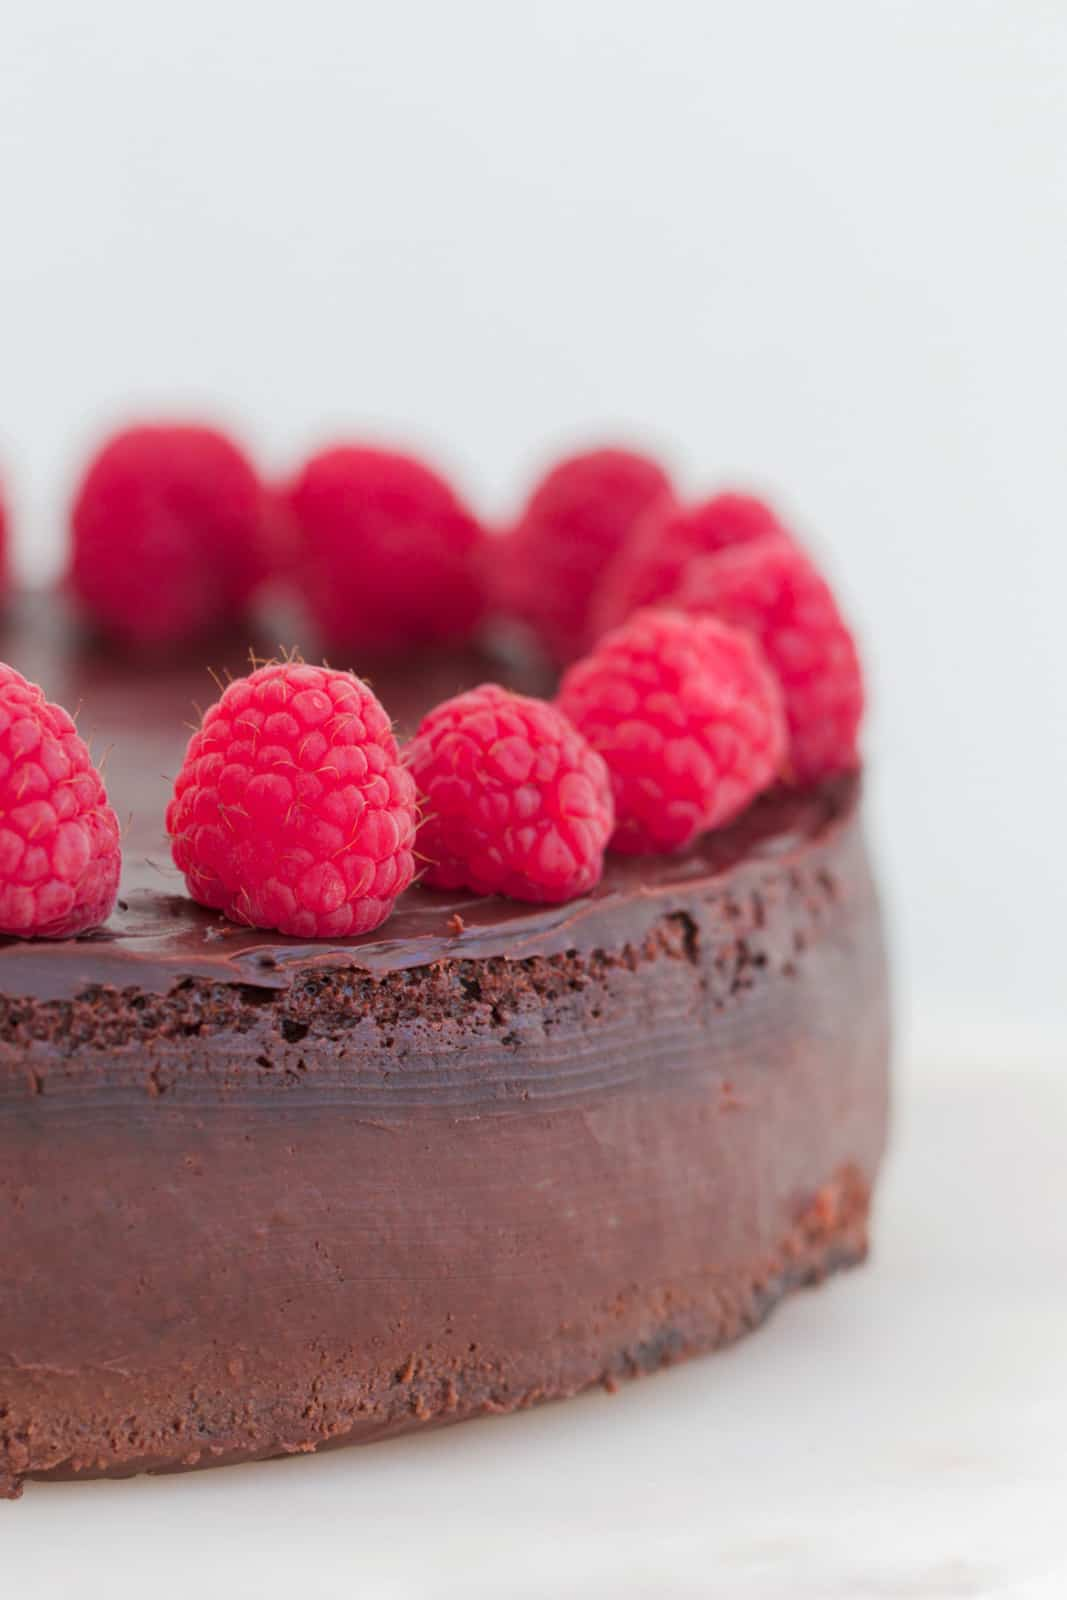 Raspberries and ganache on top of a rich flourless chocolate dessert cake.